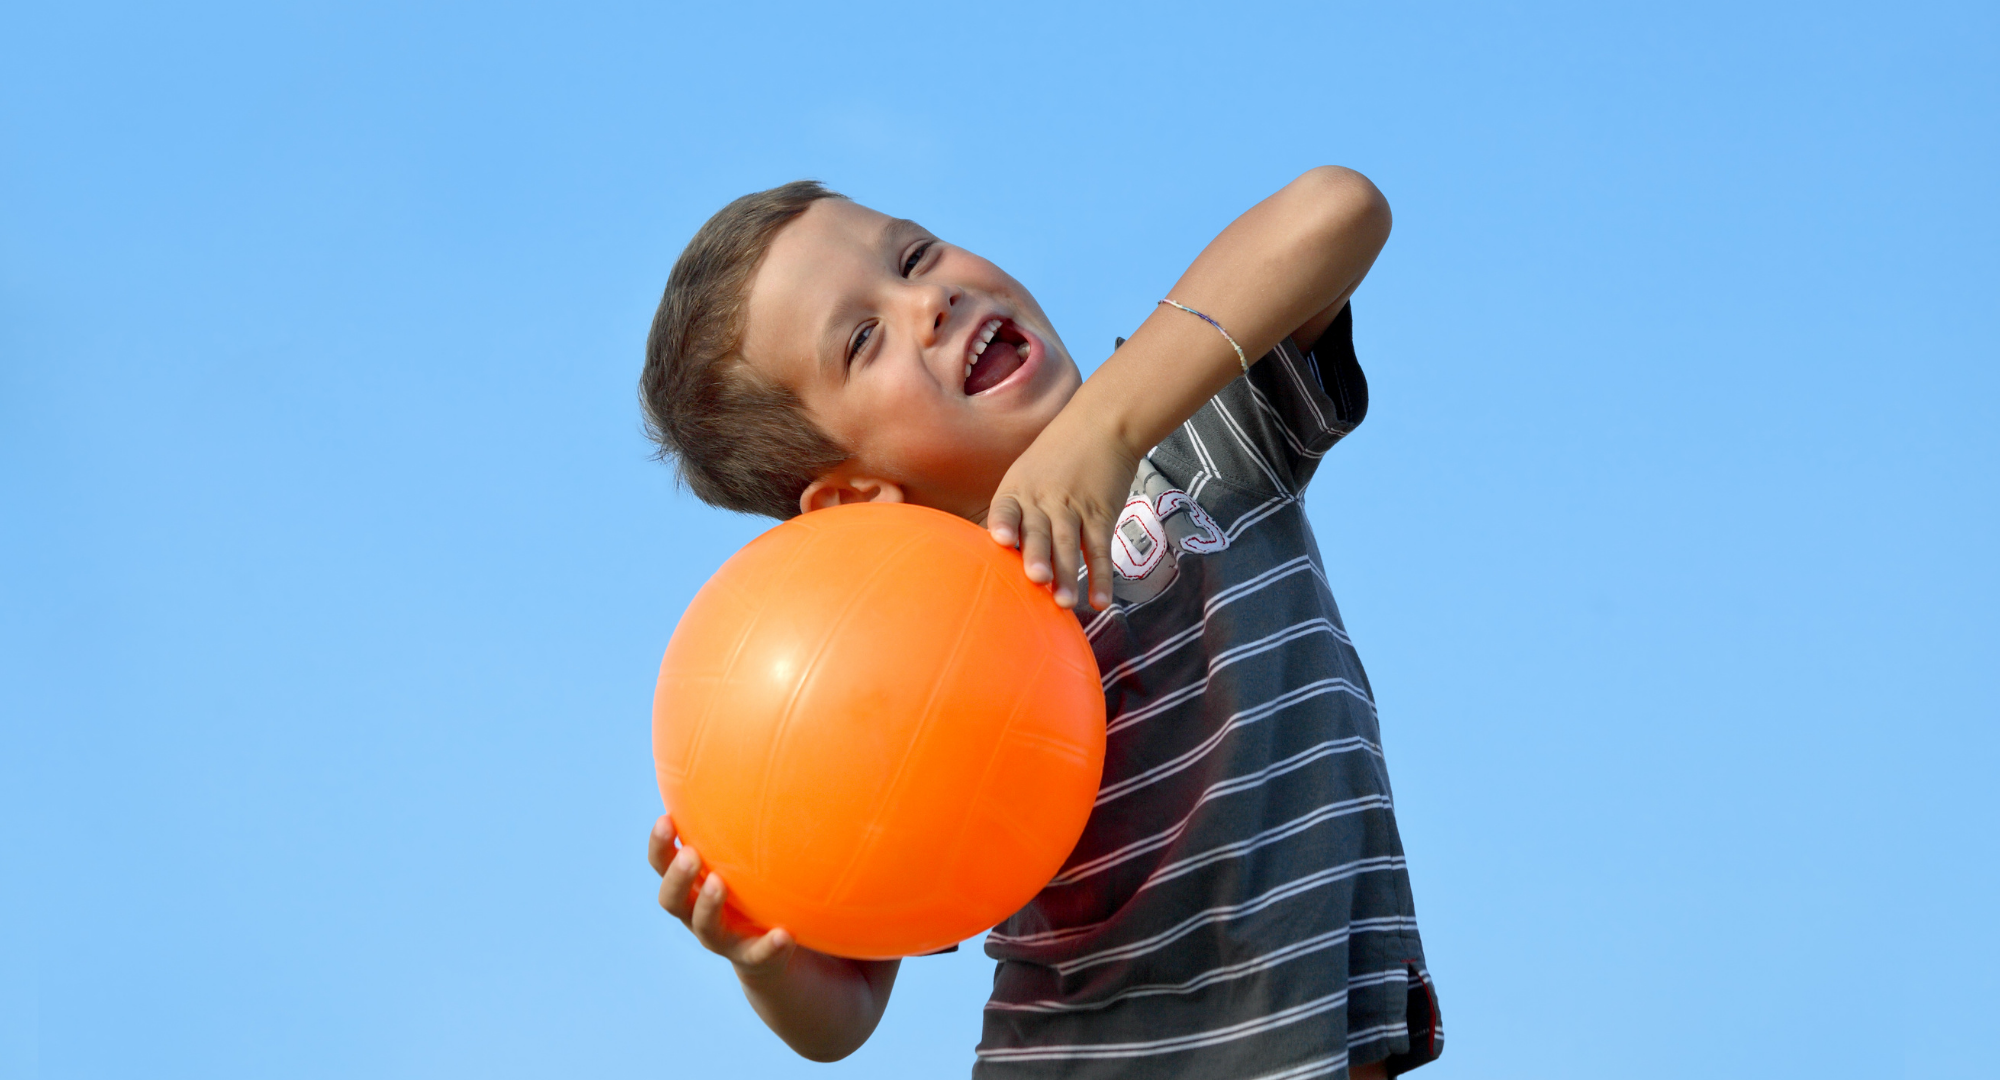 A boy smiling with an orange ball